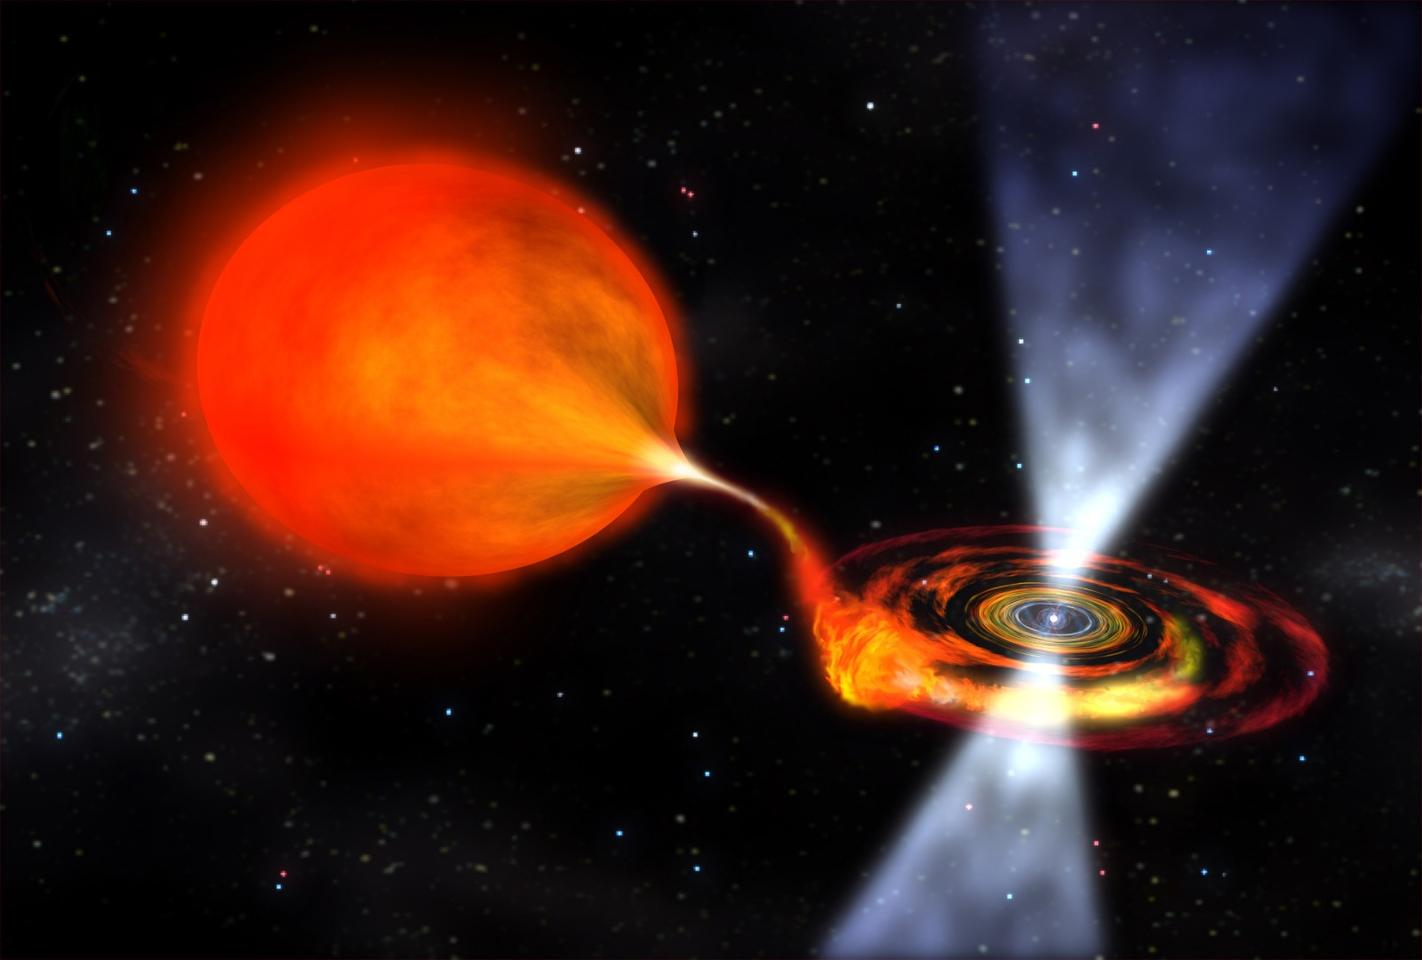 A fast-spin neutron star feeding off the matter from a red giant companion